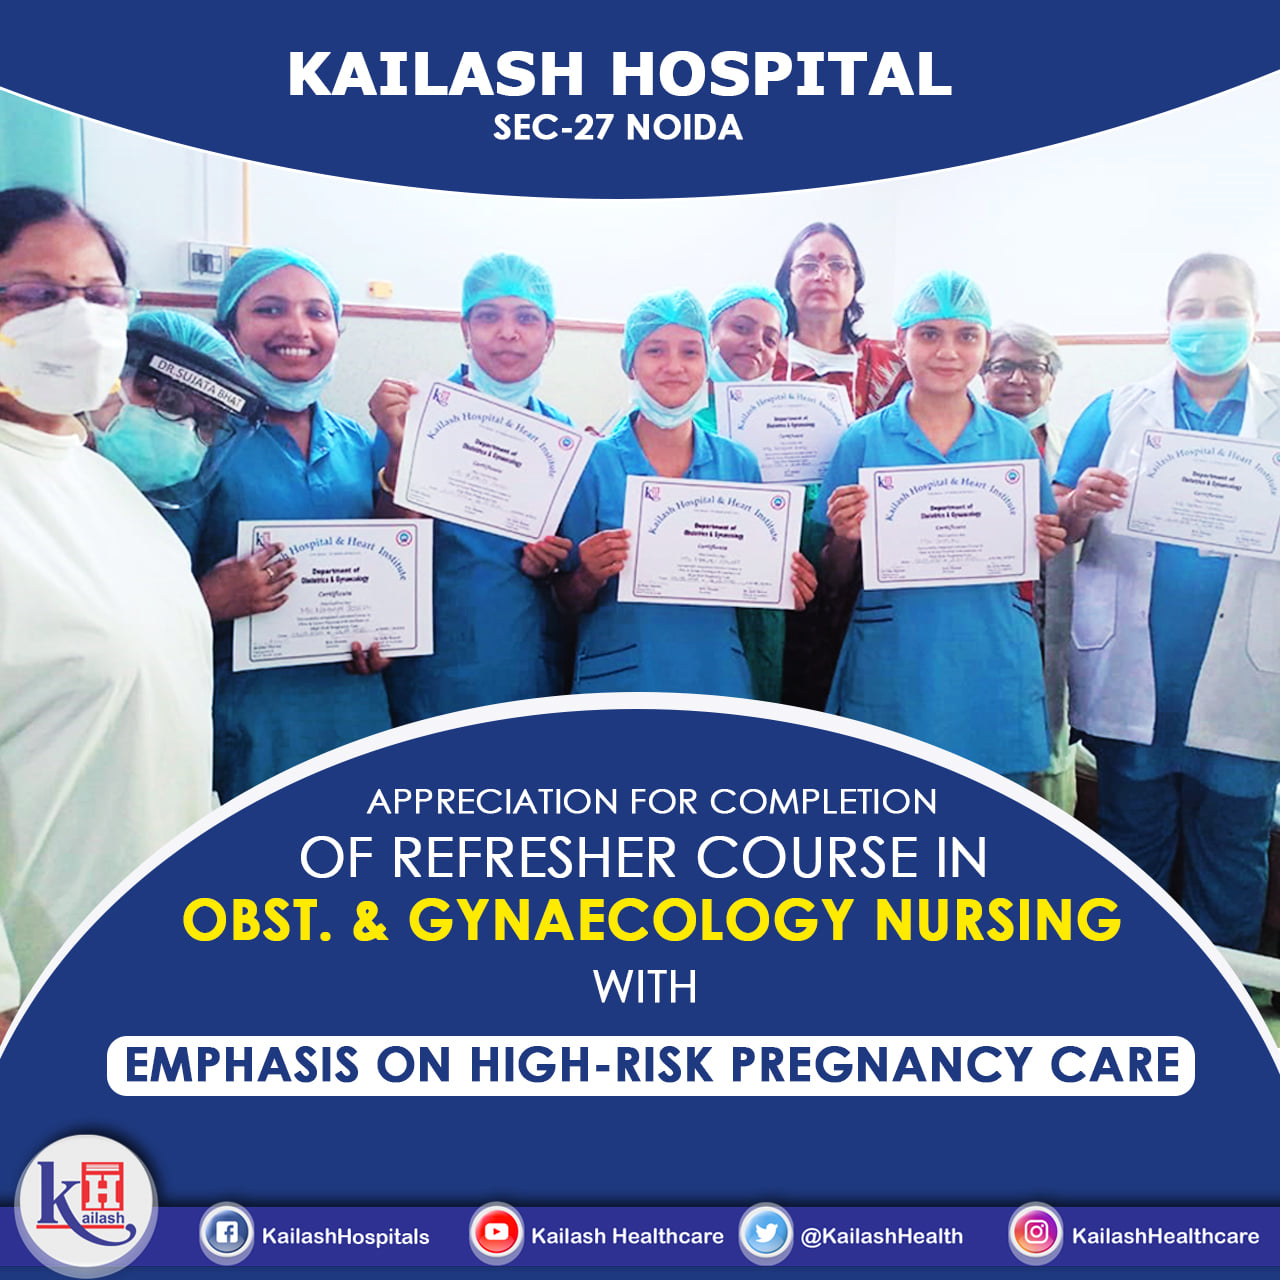 Moments from Appreciation of Nursing team at Kailash Hospital, Sec- 27 Noida in the presence Chairperson Dr. Uma Sharma, for Completion of their Refresher Course in Obst. & Gynaecology Nursing with Emphasis on High- Risk Pregnancy care.